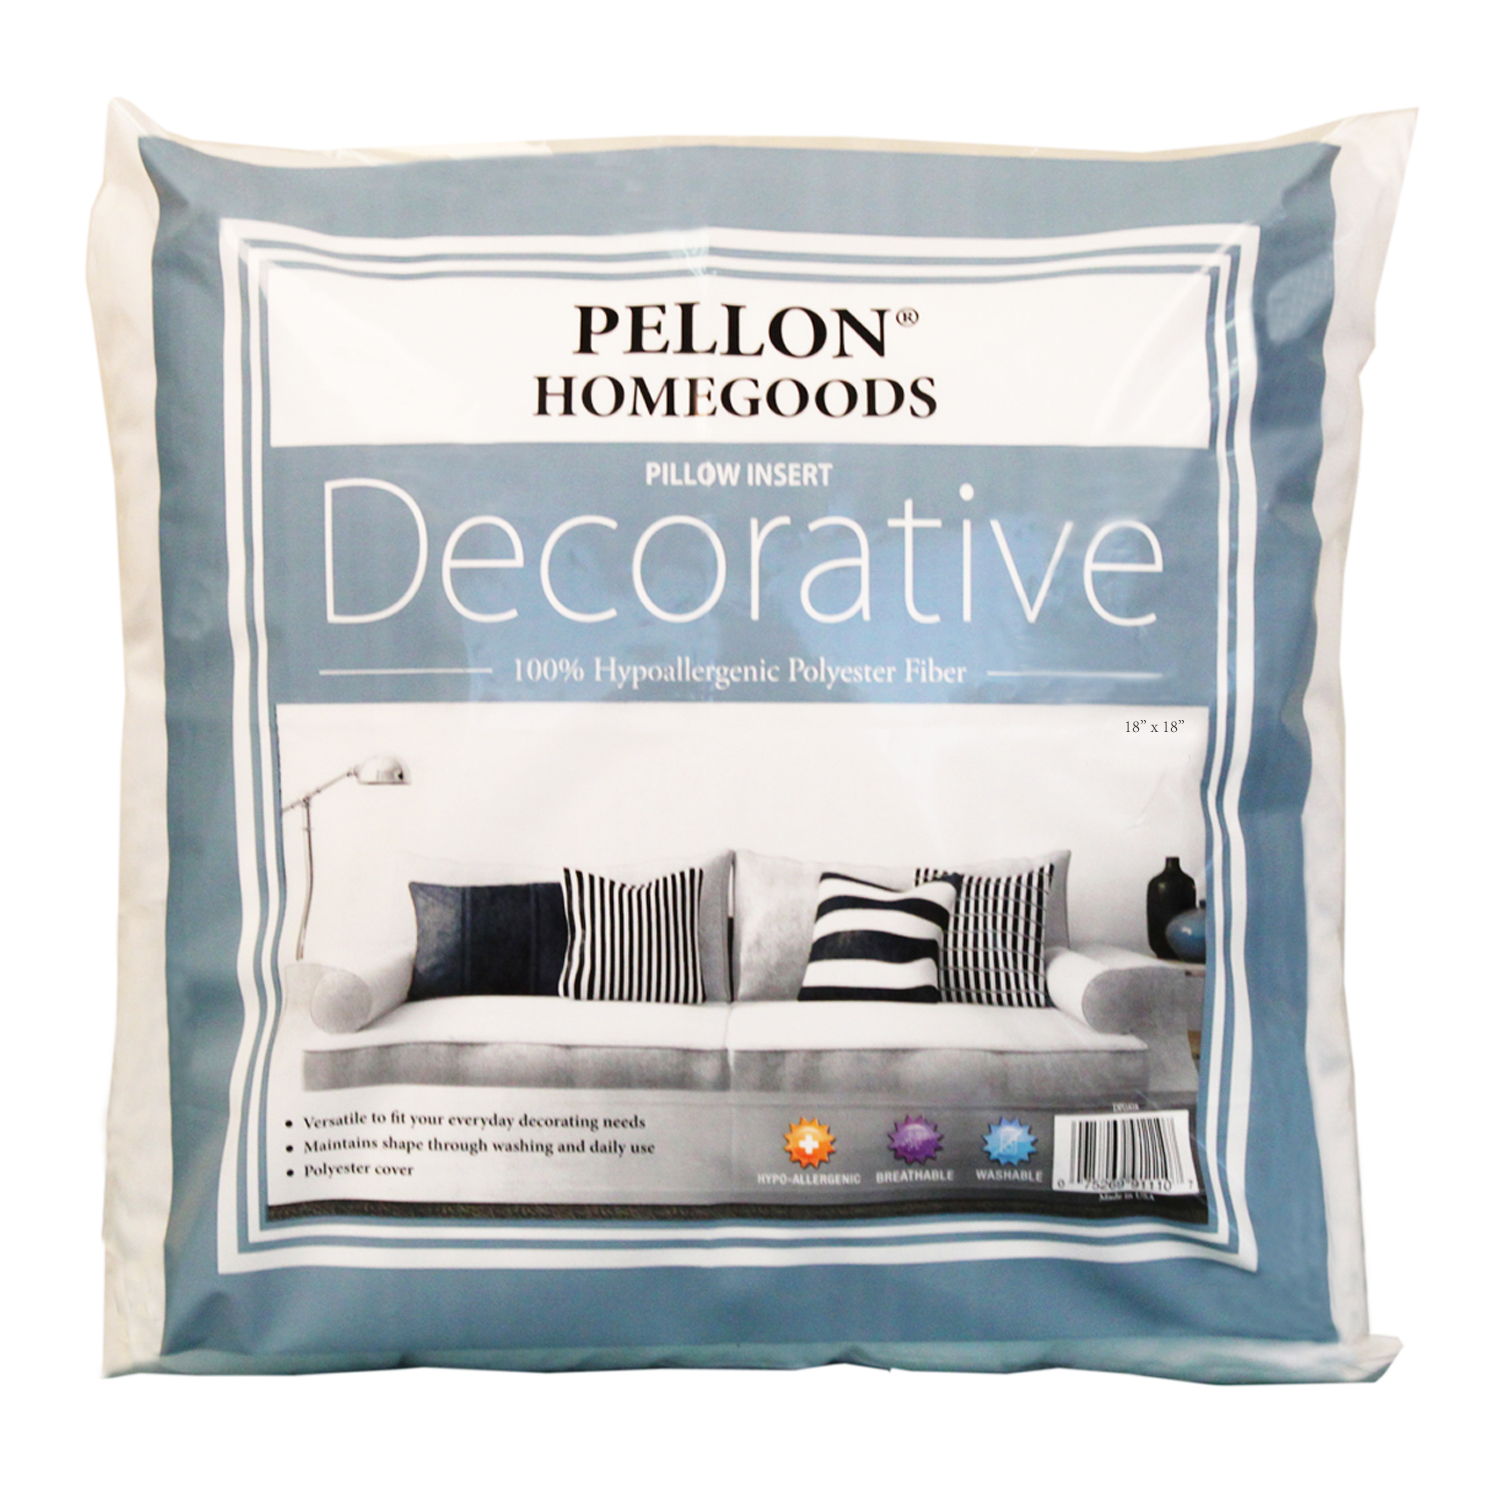 selection insert dsc accent products meraki spring modern x sunflower decor yellow collections bright home design down pillow alternative accents included